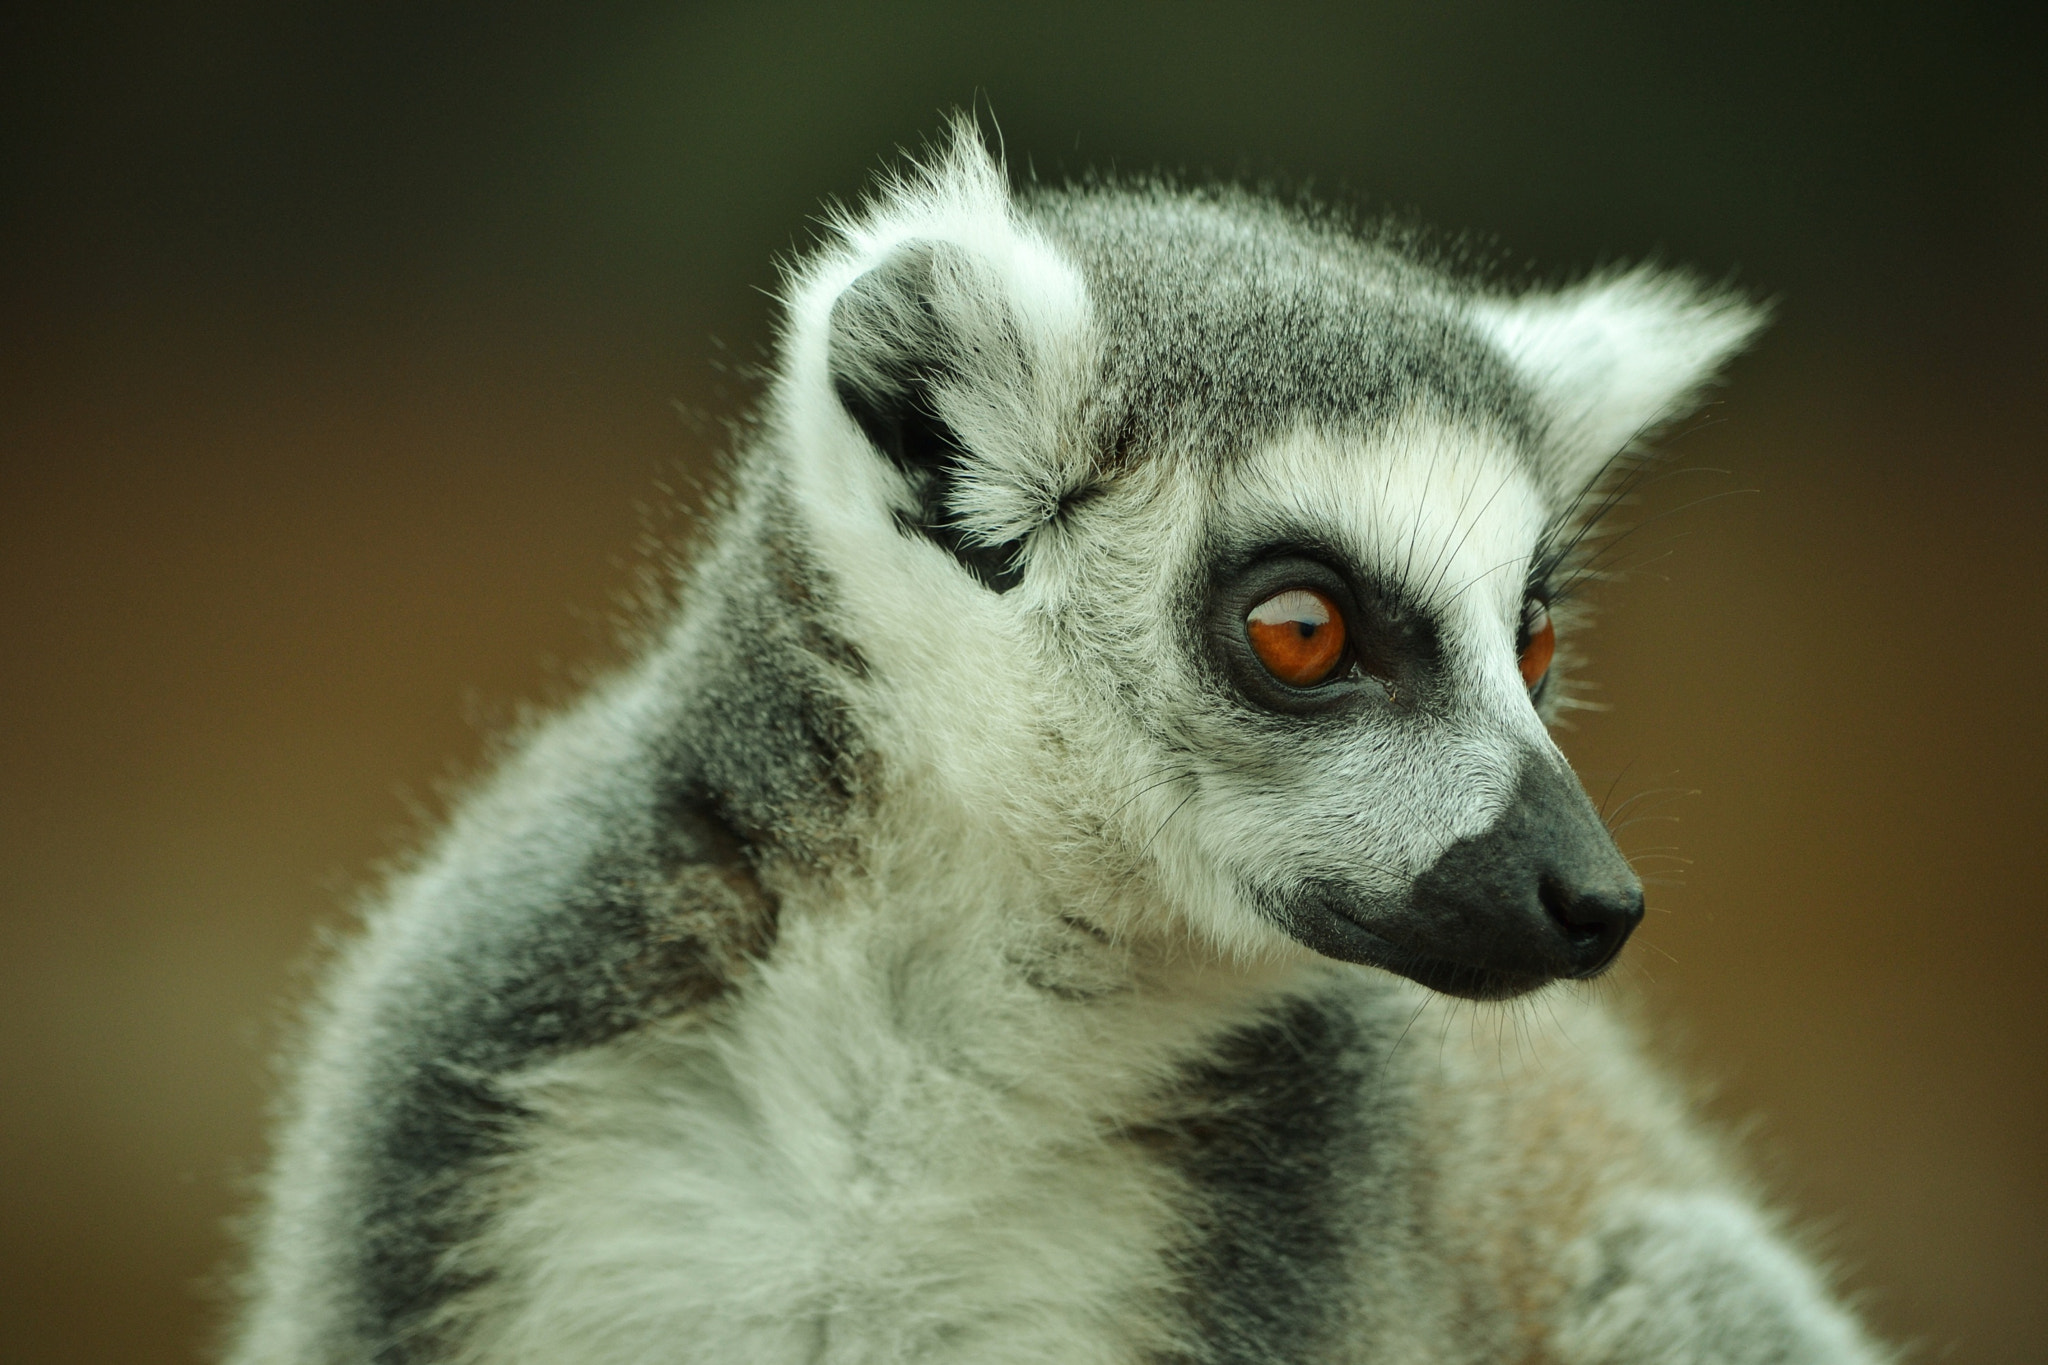 Photograph lemur portrait from 2011 by emily prouse on 500px